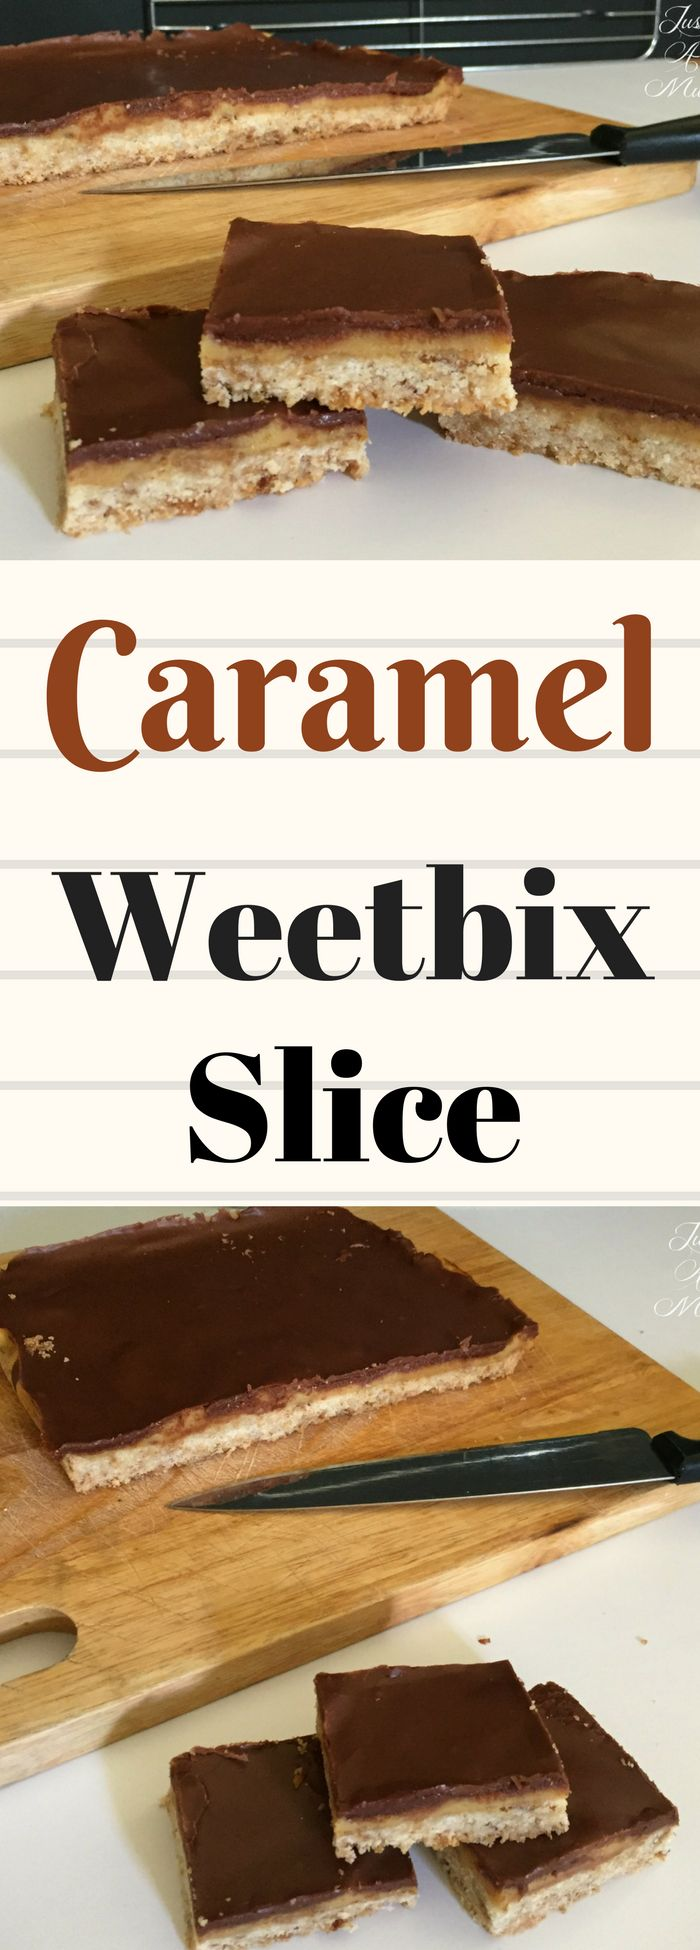 So easy, delicious, great way to use up half a can of condensed milk! Caramel Weetbix Slice is delicious!